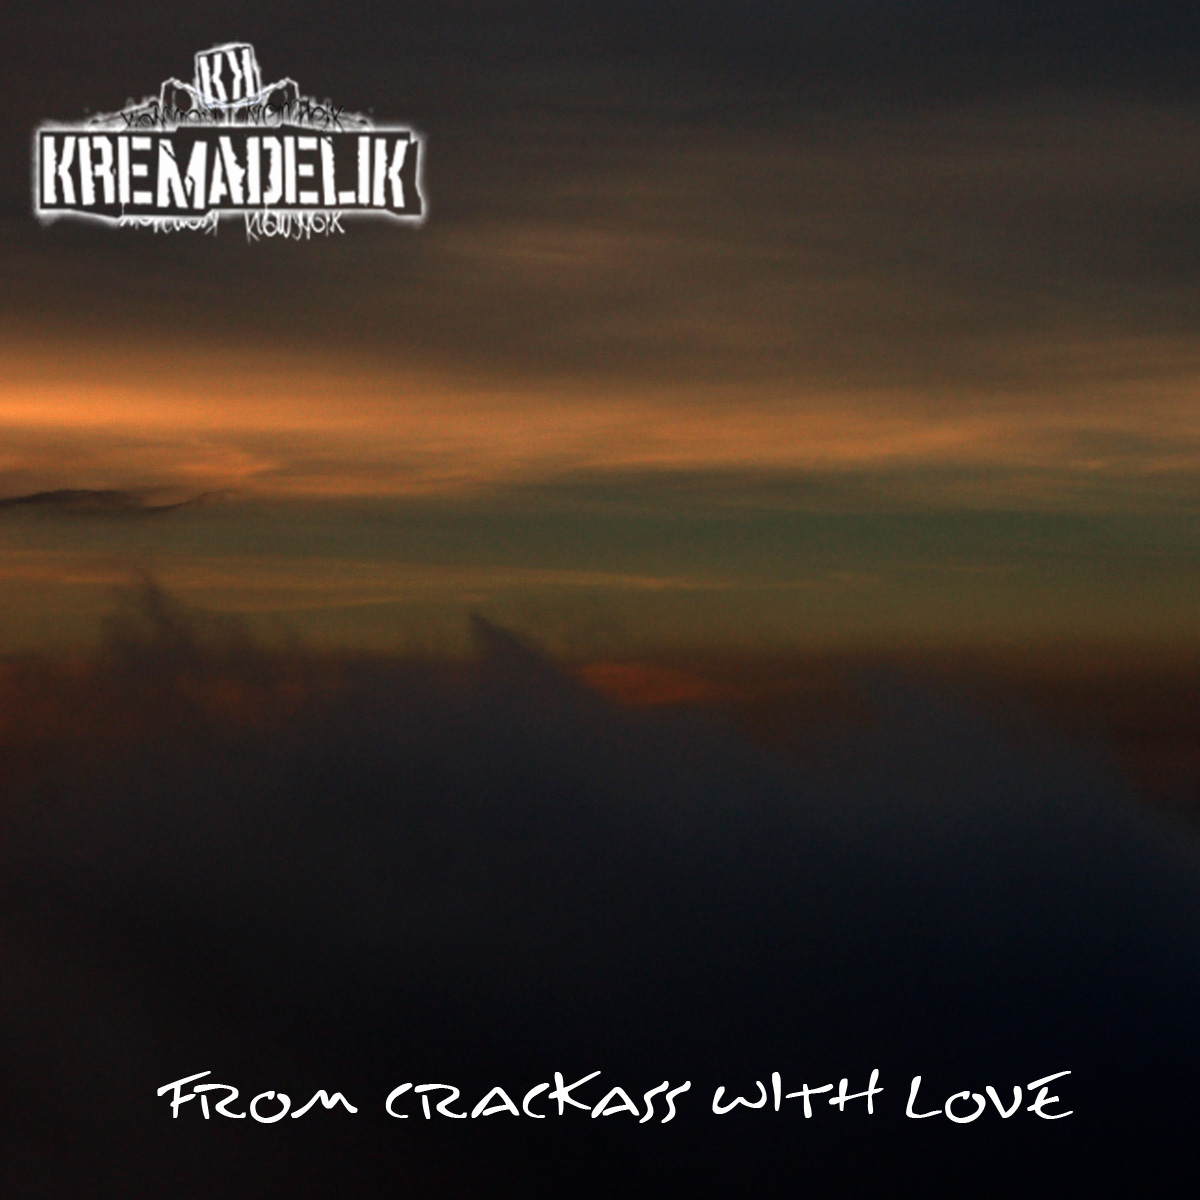 V/A - From Crackass With Love - Kremadelik